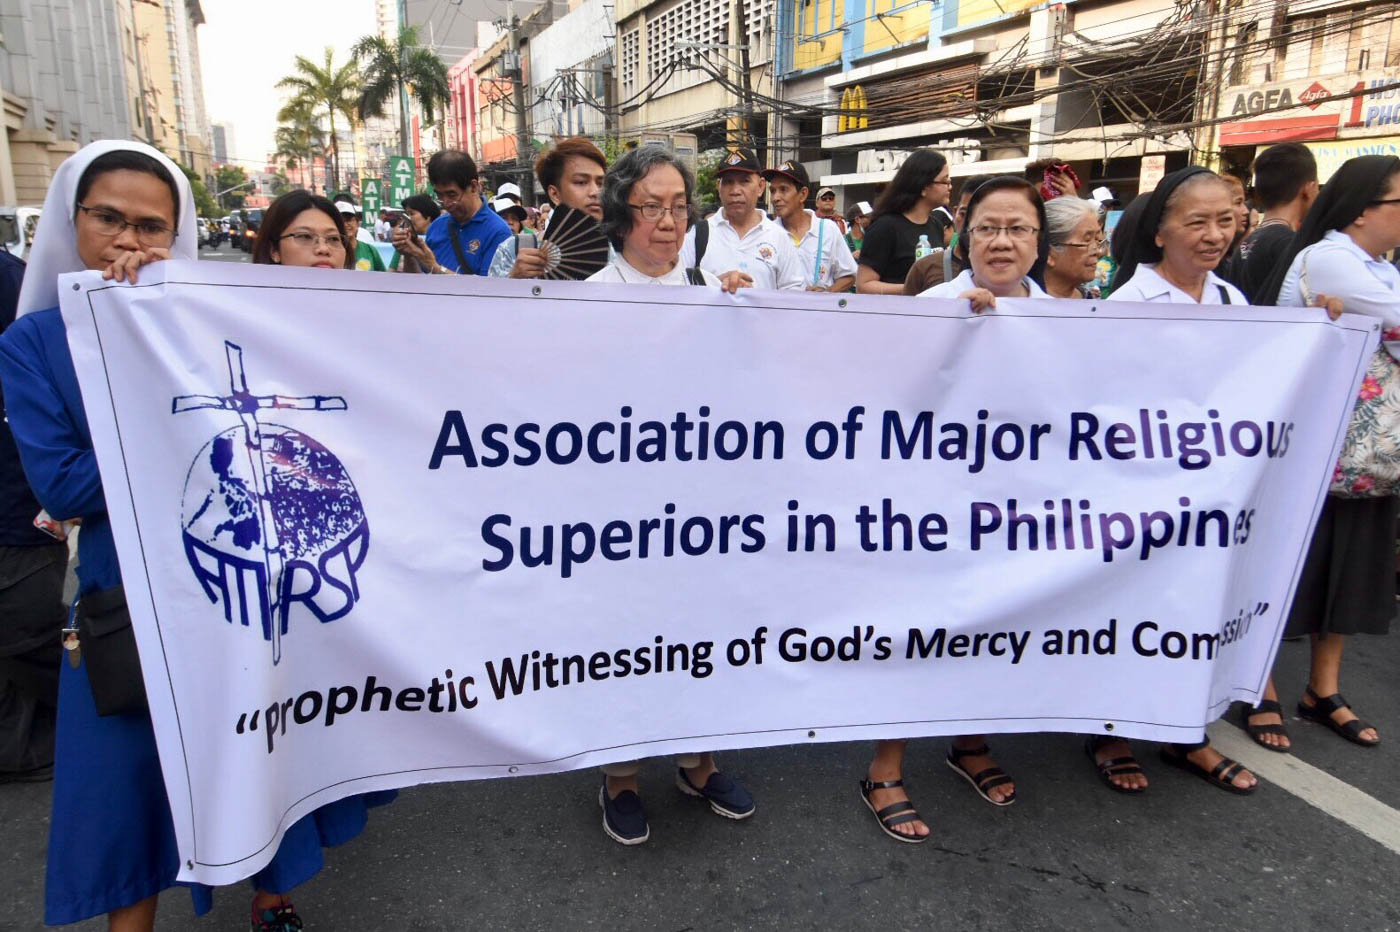 PROTEST. Religious organizations join in the symbolic march to Mendiola on World Environment Day. Photo by Angie de Silva/Rappler